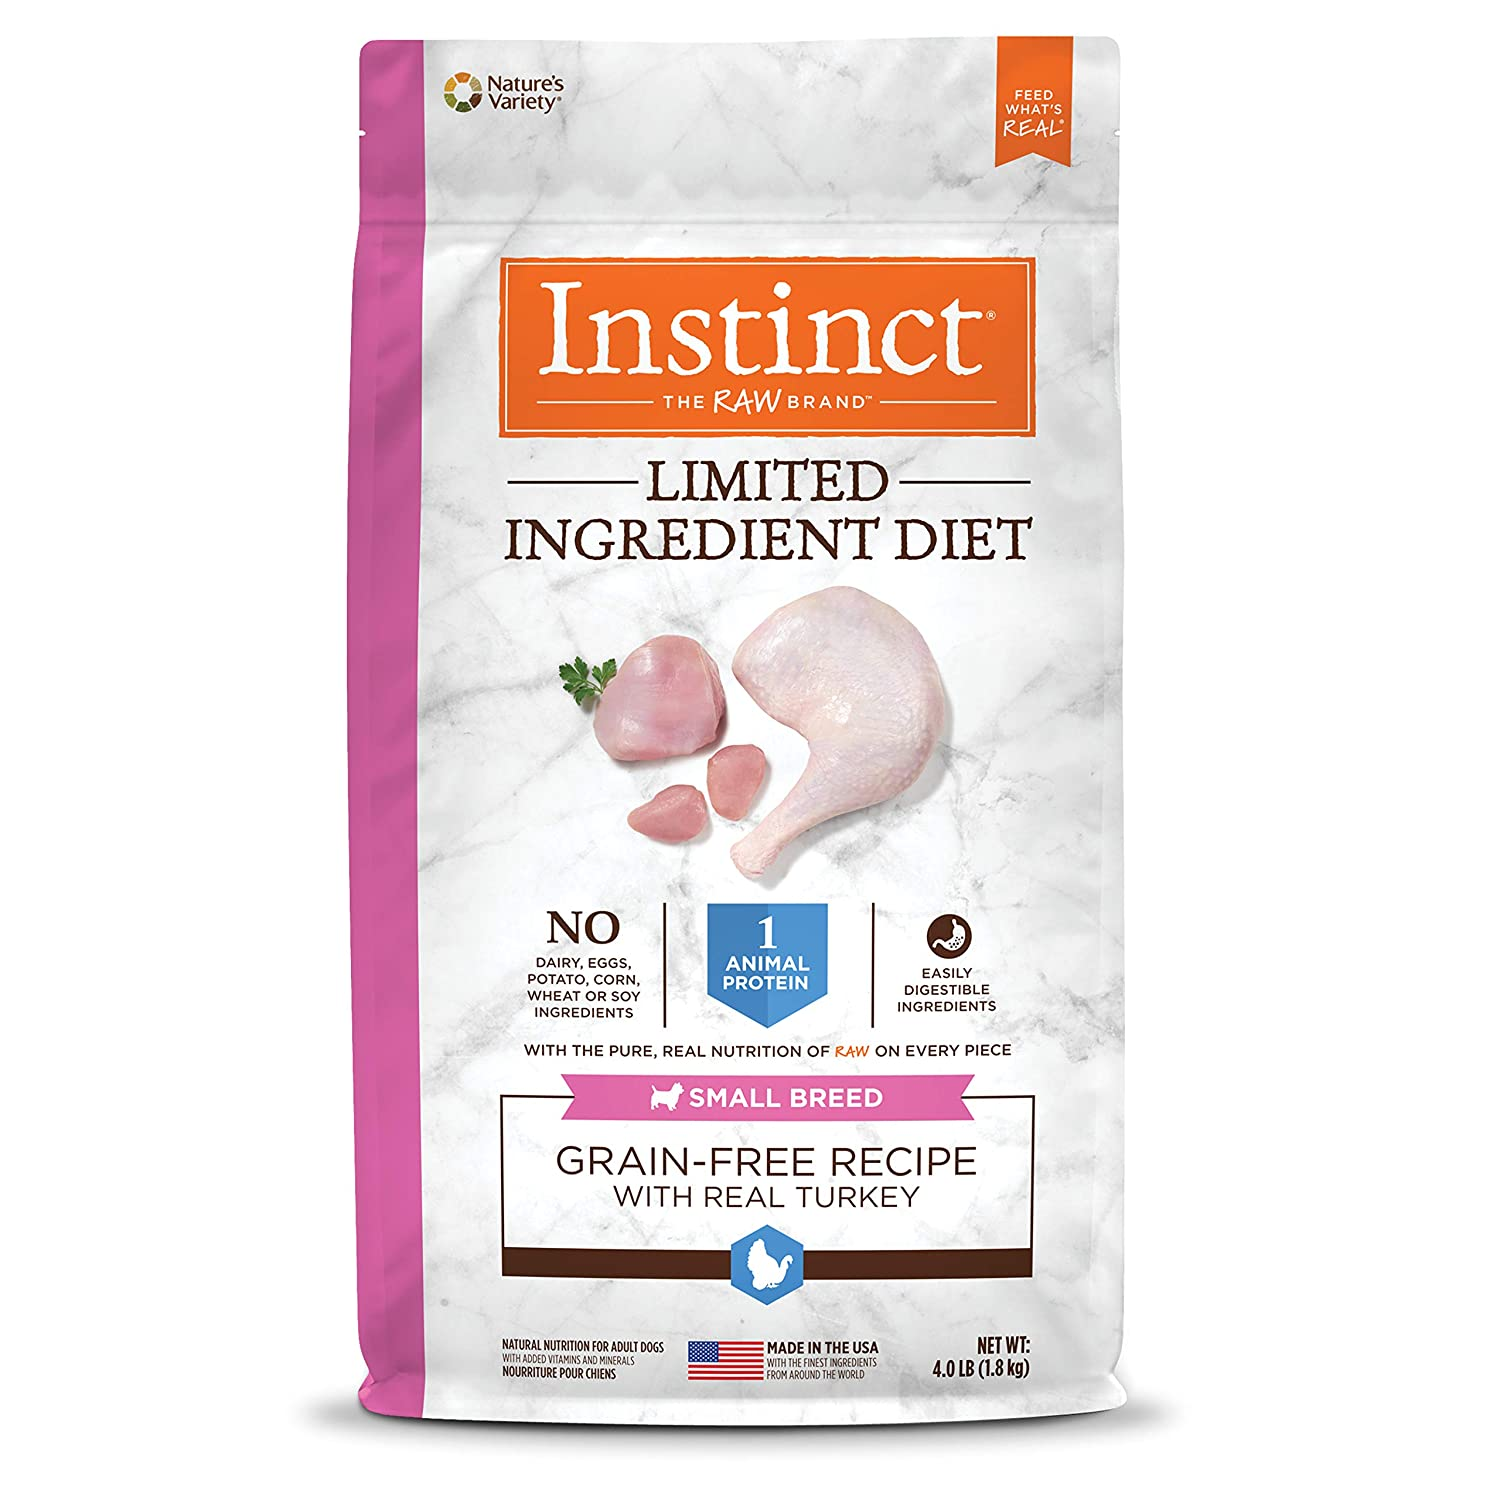 4 lb. Bag Instinct Limited Ingredient Diet Small Breed Grain Free Recipe with Real Turkey Natural Dry Dog Food by Nature's Variety, 4 lb. Bag